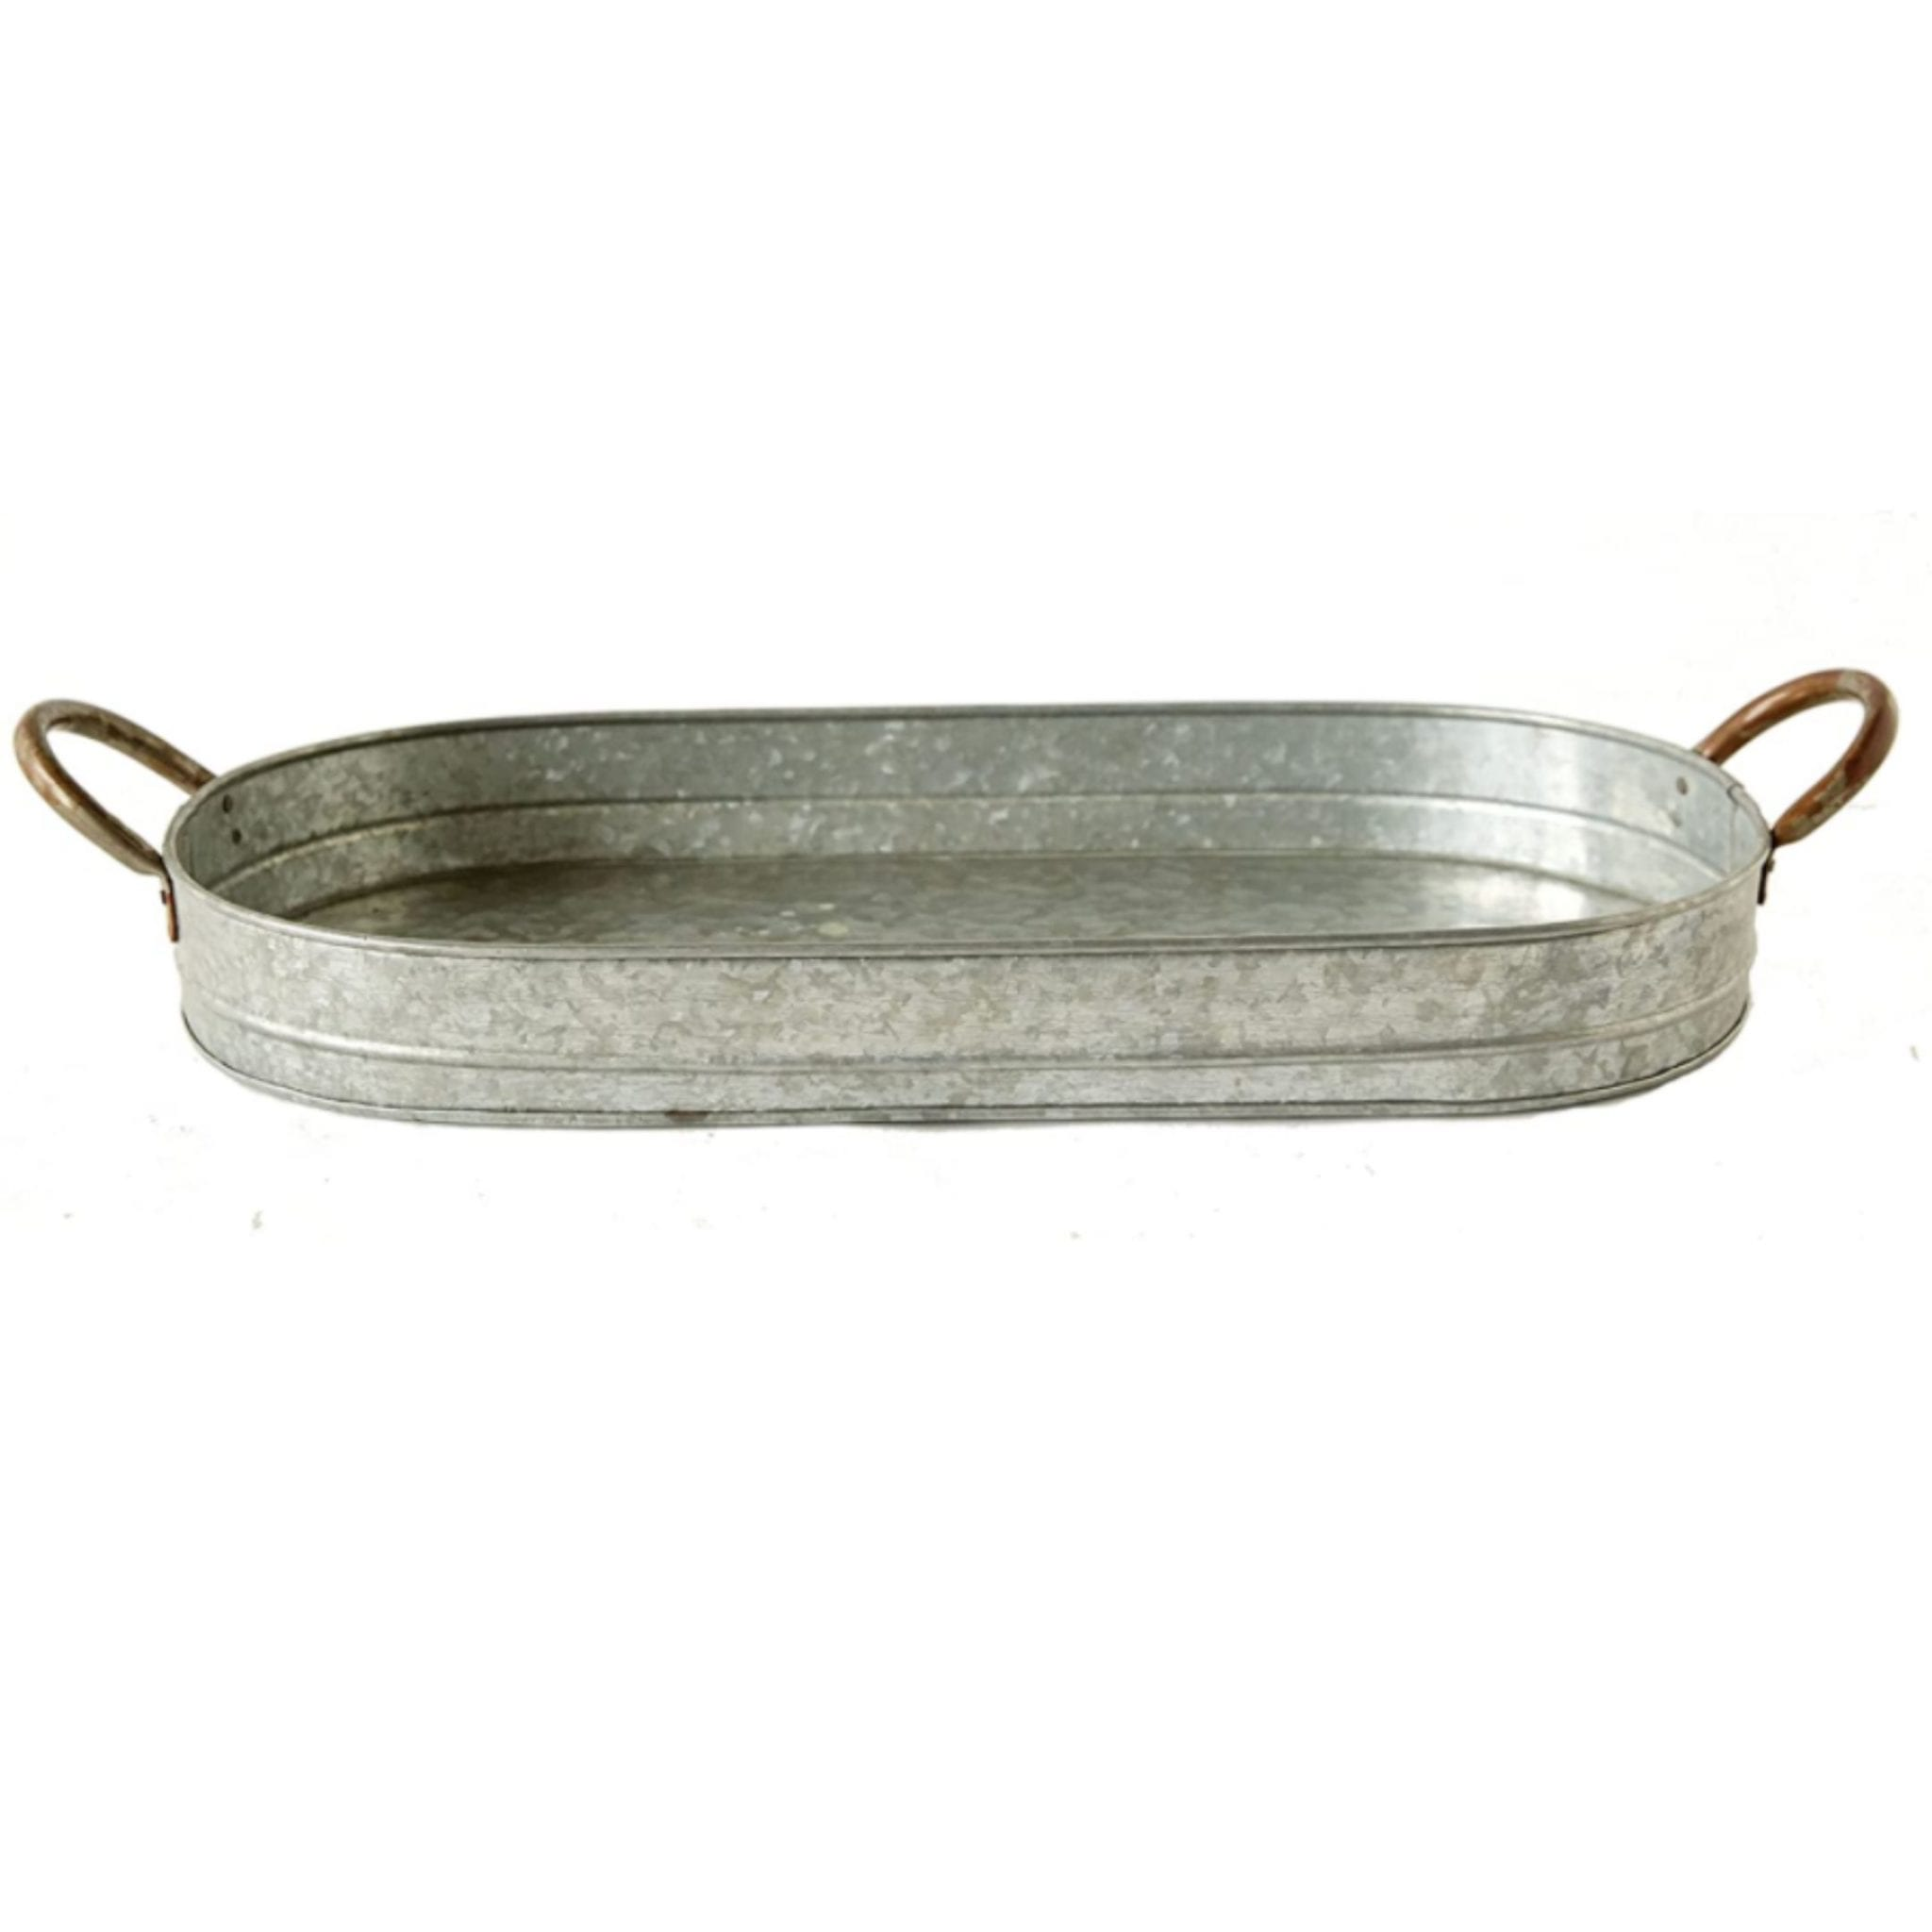 Silver Oval Decorative Tray With Galvanized Metal Handles Creative Co-Op Silver Oval Decorative Tray